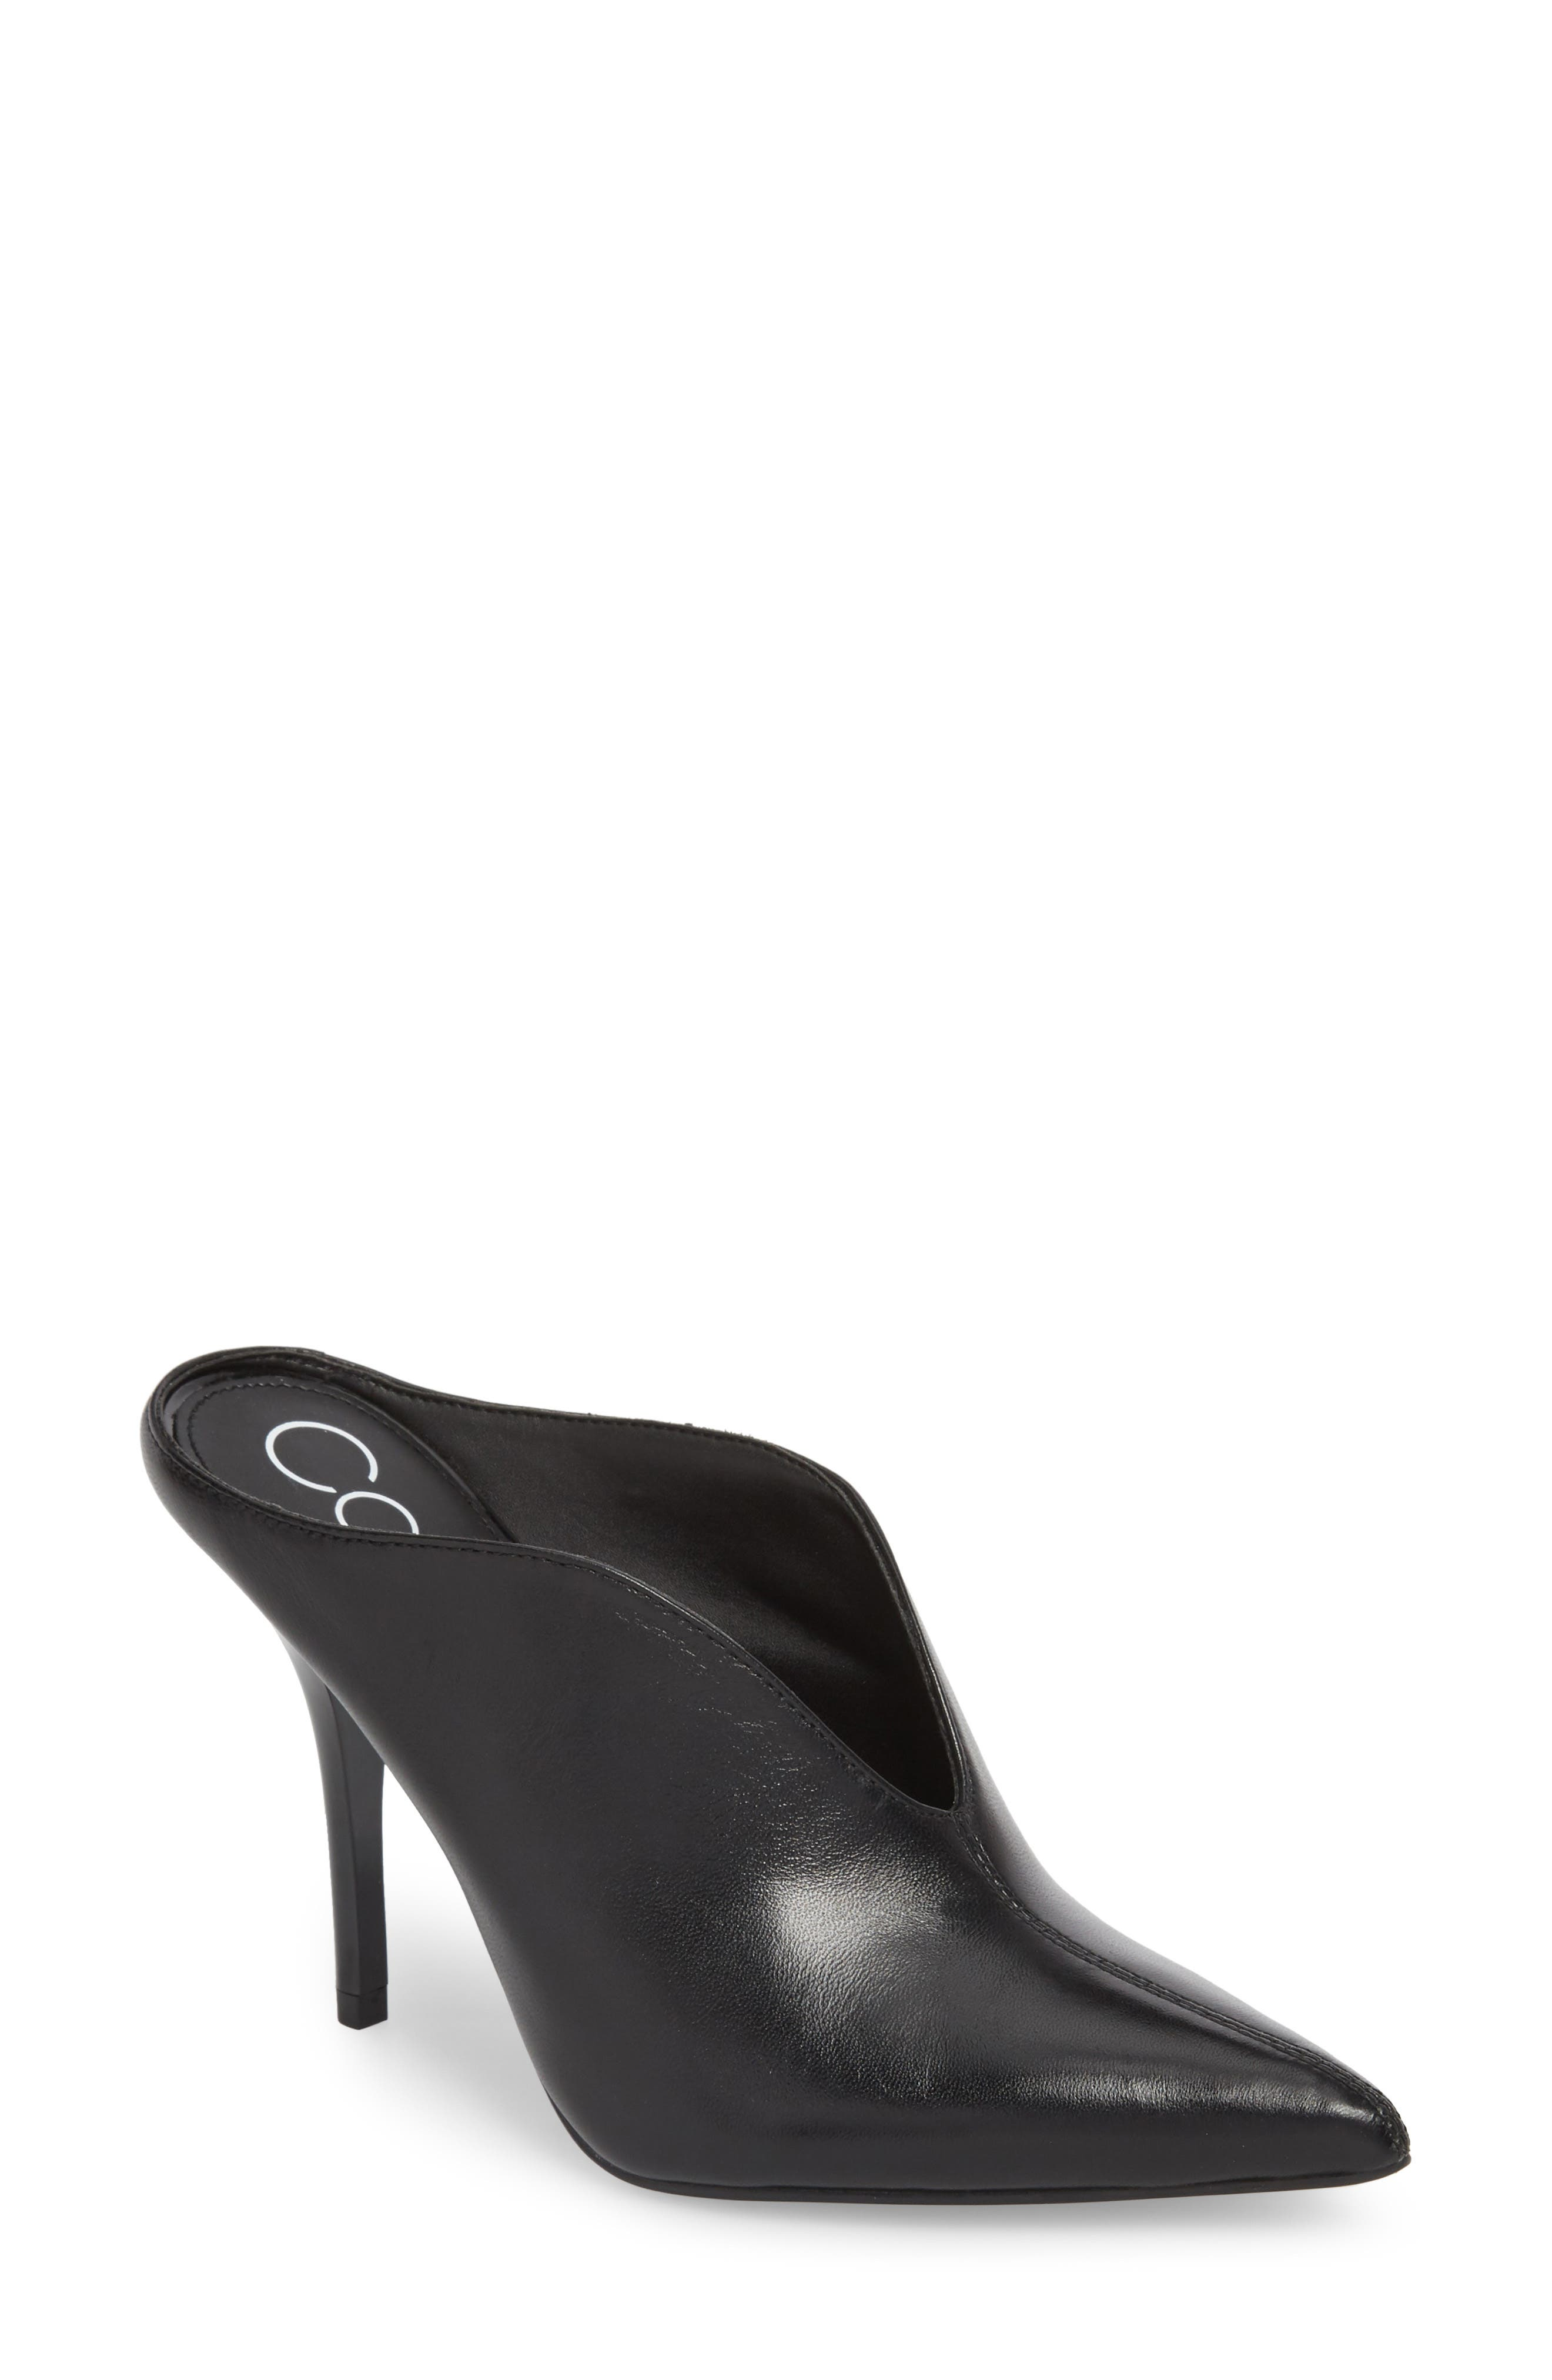 Mallie Pointy Toe Mule,                             Main thumbnail 1, color,                             BLACK LEATHER